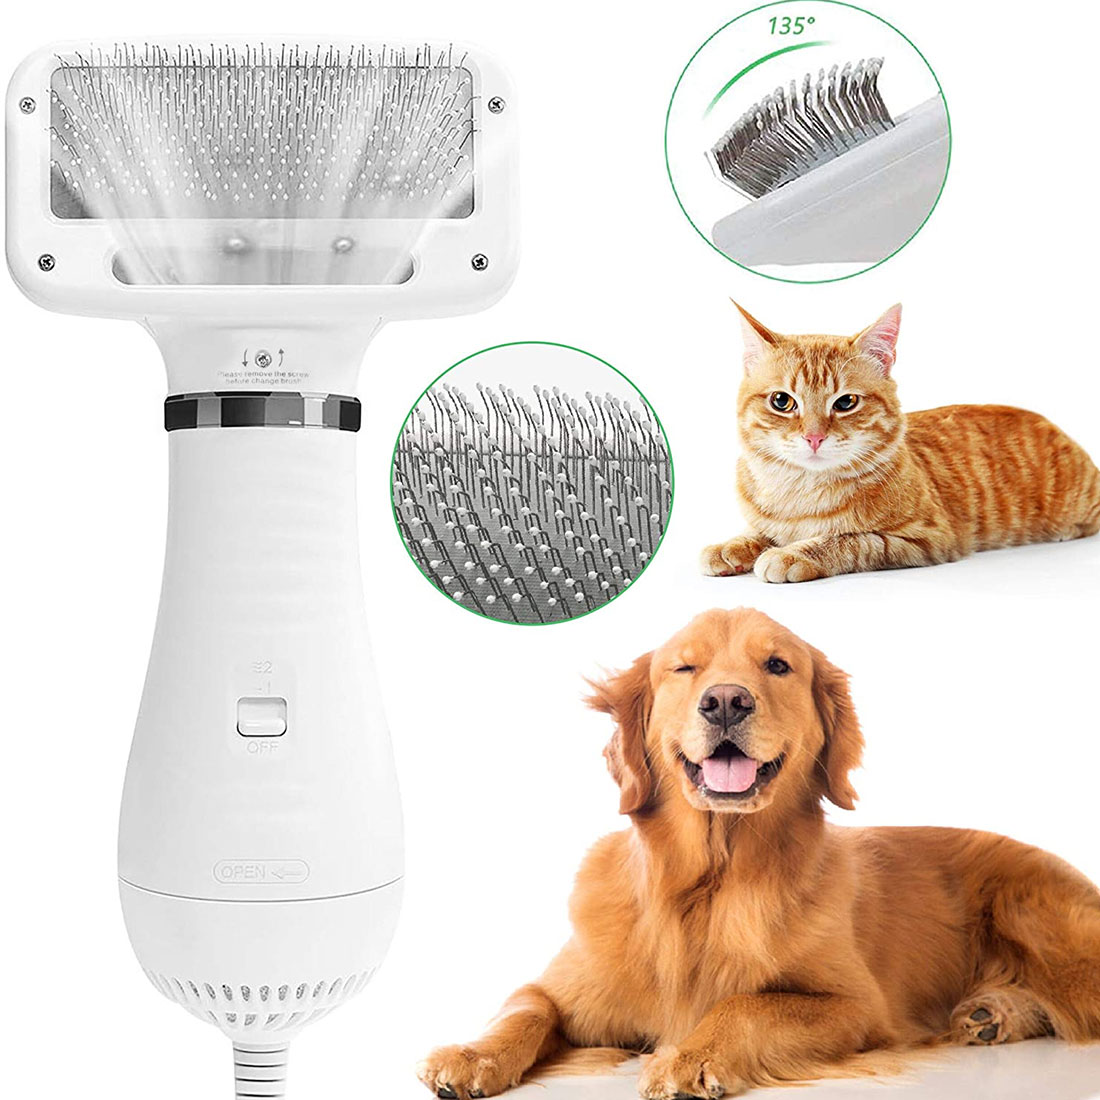 Household 2 in 1 Pet Grooming Hair Dryer With Slicker Brush Pet Cat Dog  Hairbrush Dog Comb Pet Hair Dryer And Comb Pet Grooming|Dog Dryers| -  AliExpress